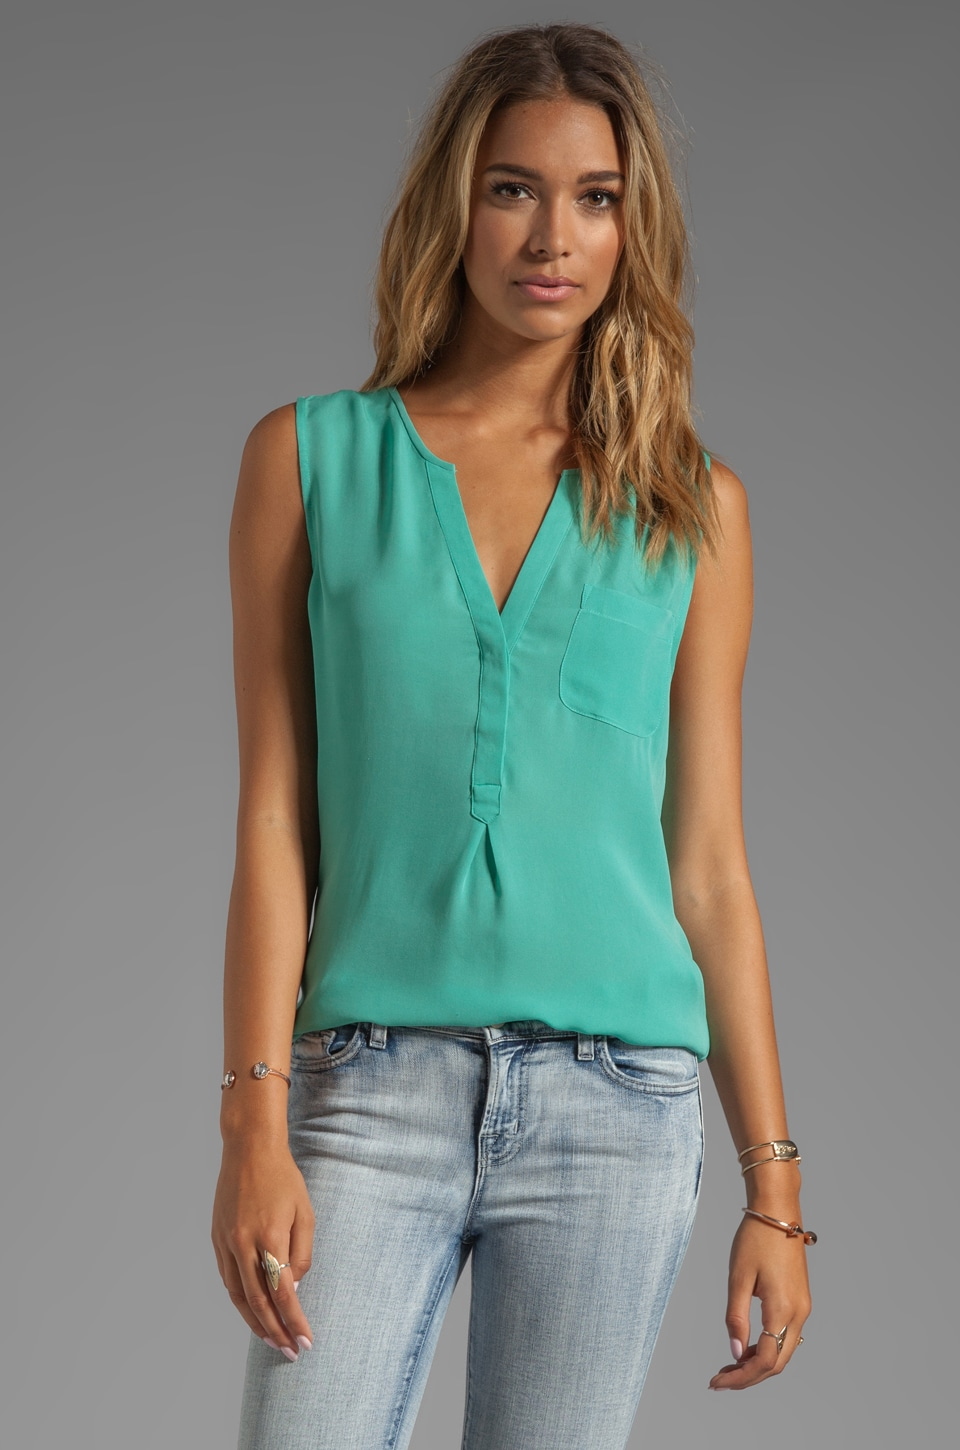 Joie Matte Silk Vanitra Sleeveless Blouse in Neon Jade